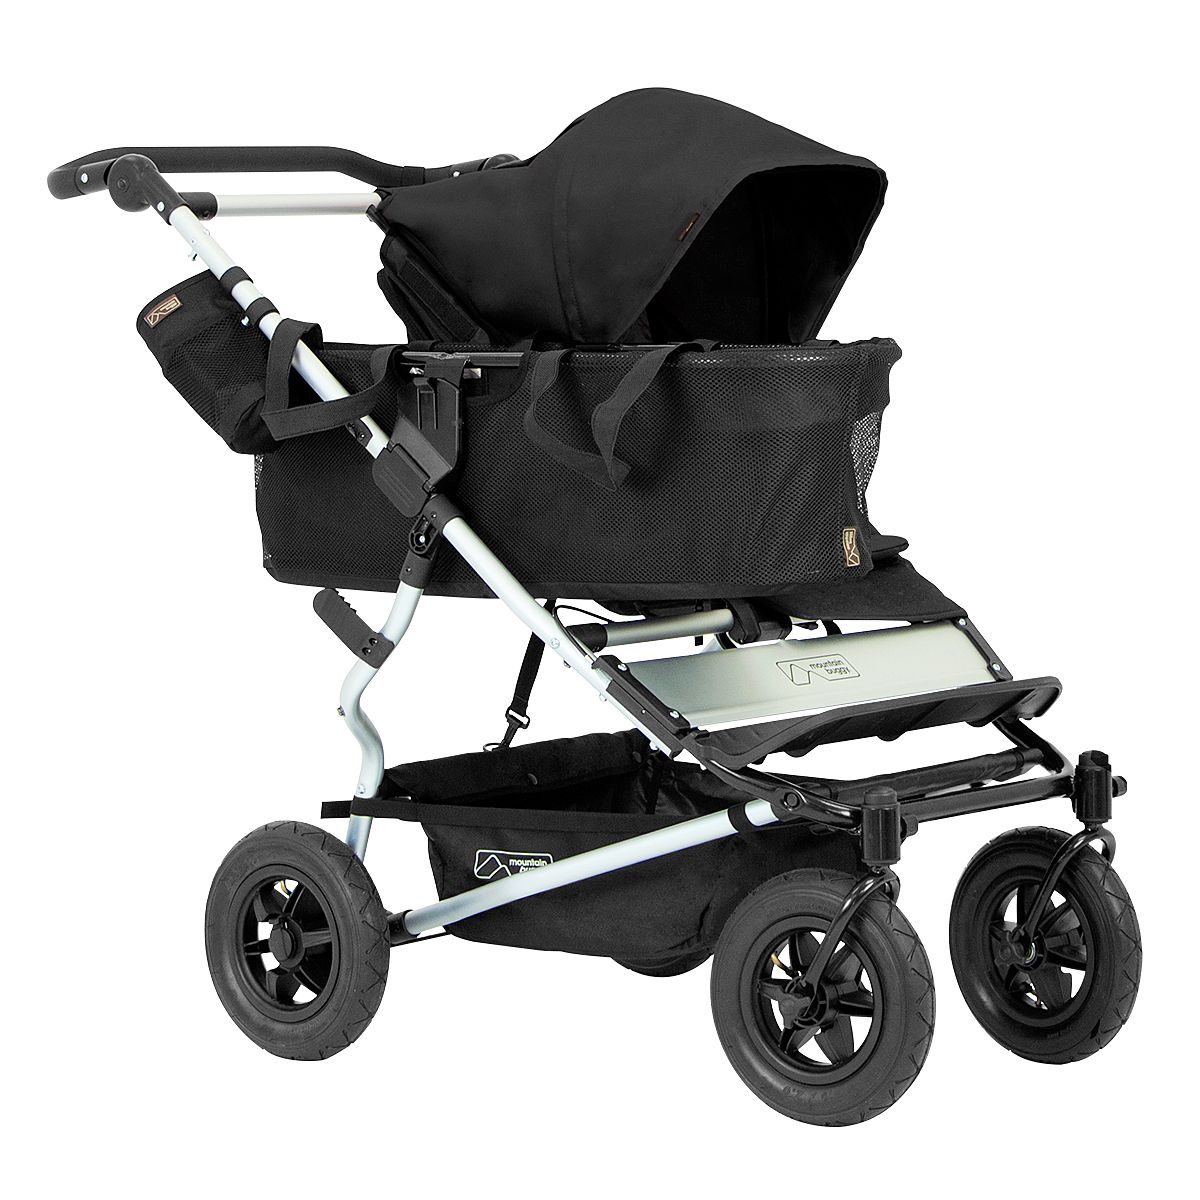 Mountain Buggy duet compact side by side stroller